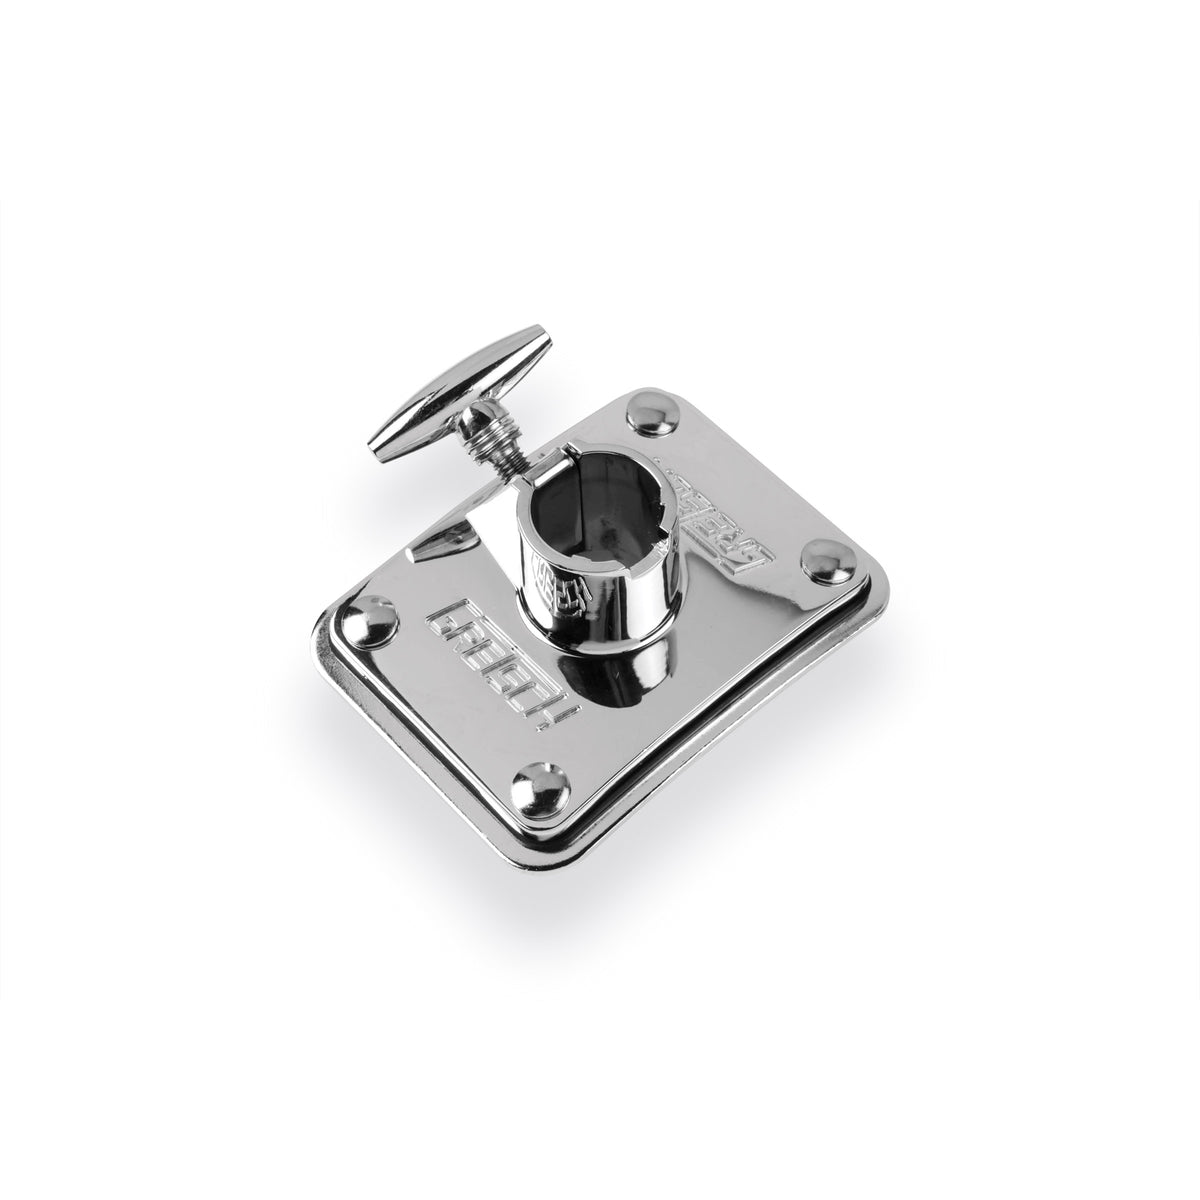 Gretsch G4946 Bass Drum Tom Mount Plate New Style